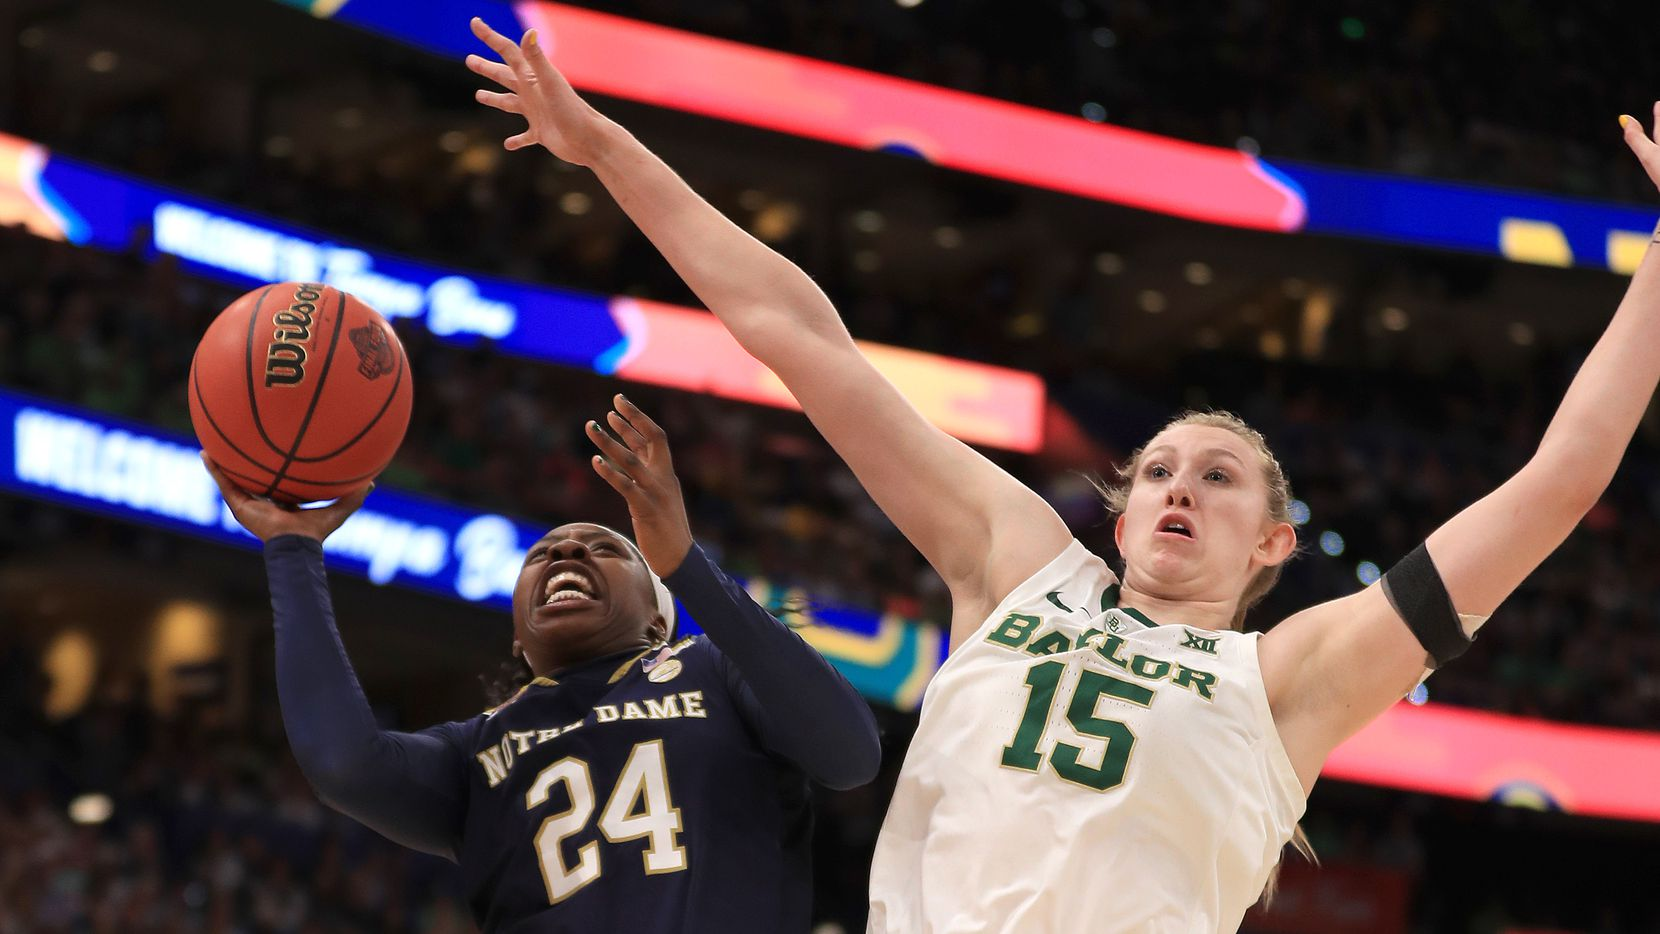 TAMPA, FLORIDA - APRIL 07:  Arike Ogunbowale #24 of the Notre Dame Fighting Irish attempts a shot against Lauren Cox #15 of the Baylor Lady Bears during the first quarter in the championship game of the 2019 NCAA Women's Final Four at Amalie Arena on April 07, 2019 in Tampa, Florida. (Photo by Mike Ehrmann/Getty Images)